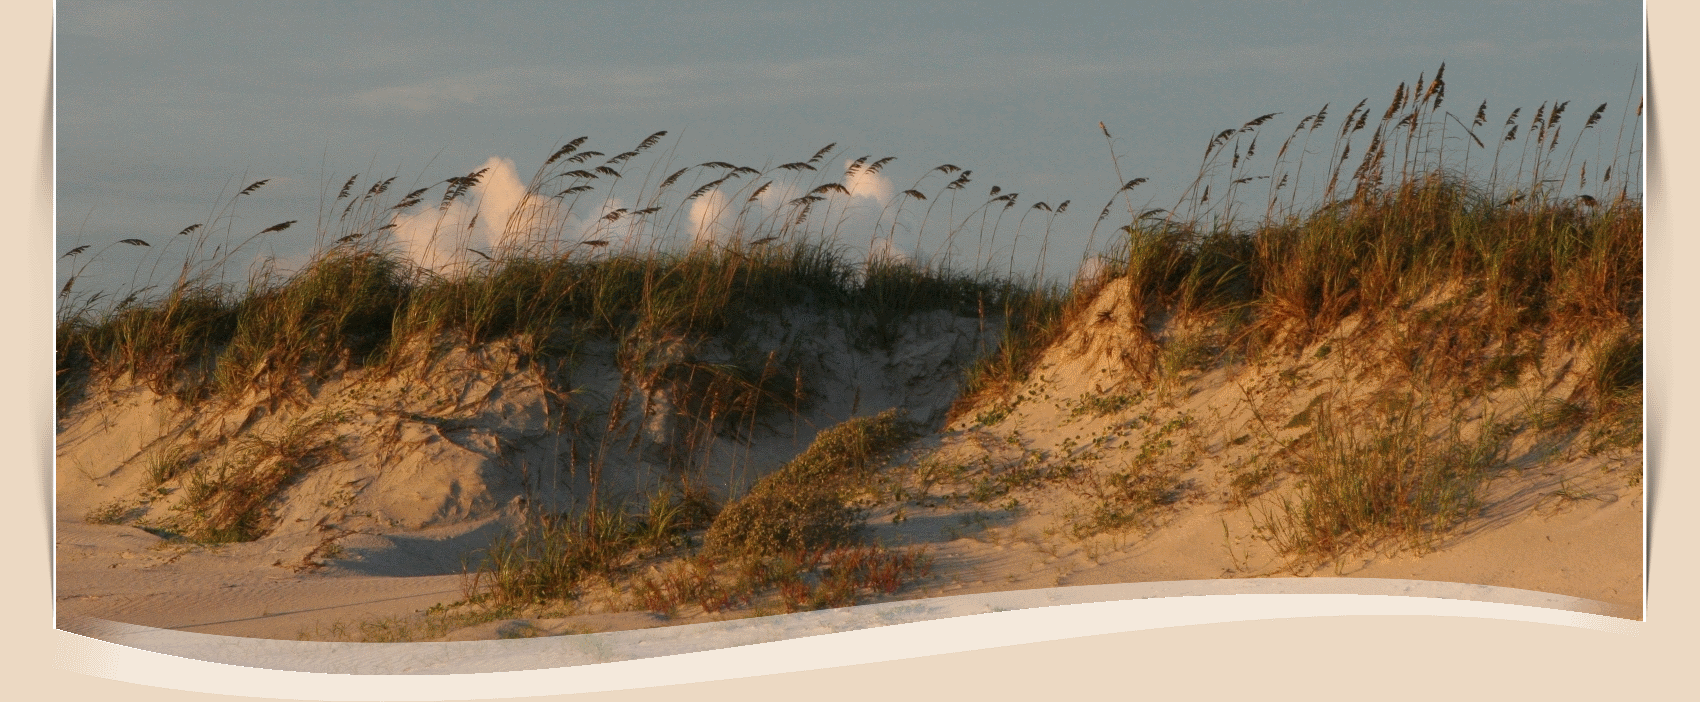 New Smyrna Beach Fl Official Website Official Website